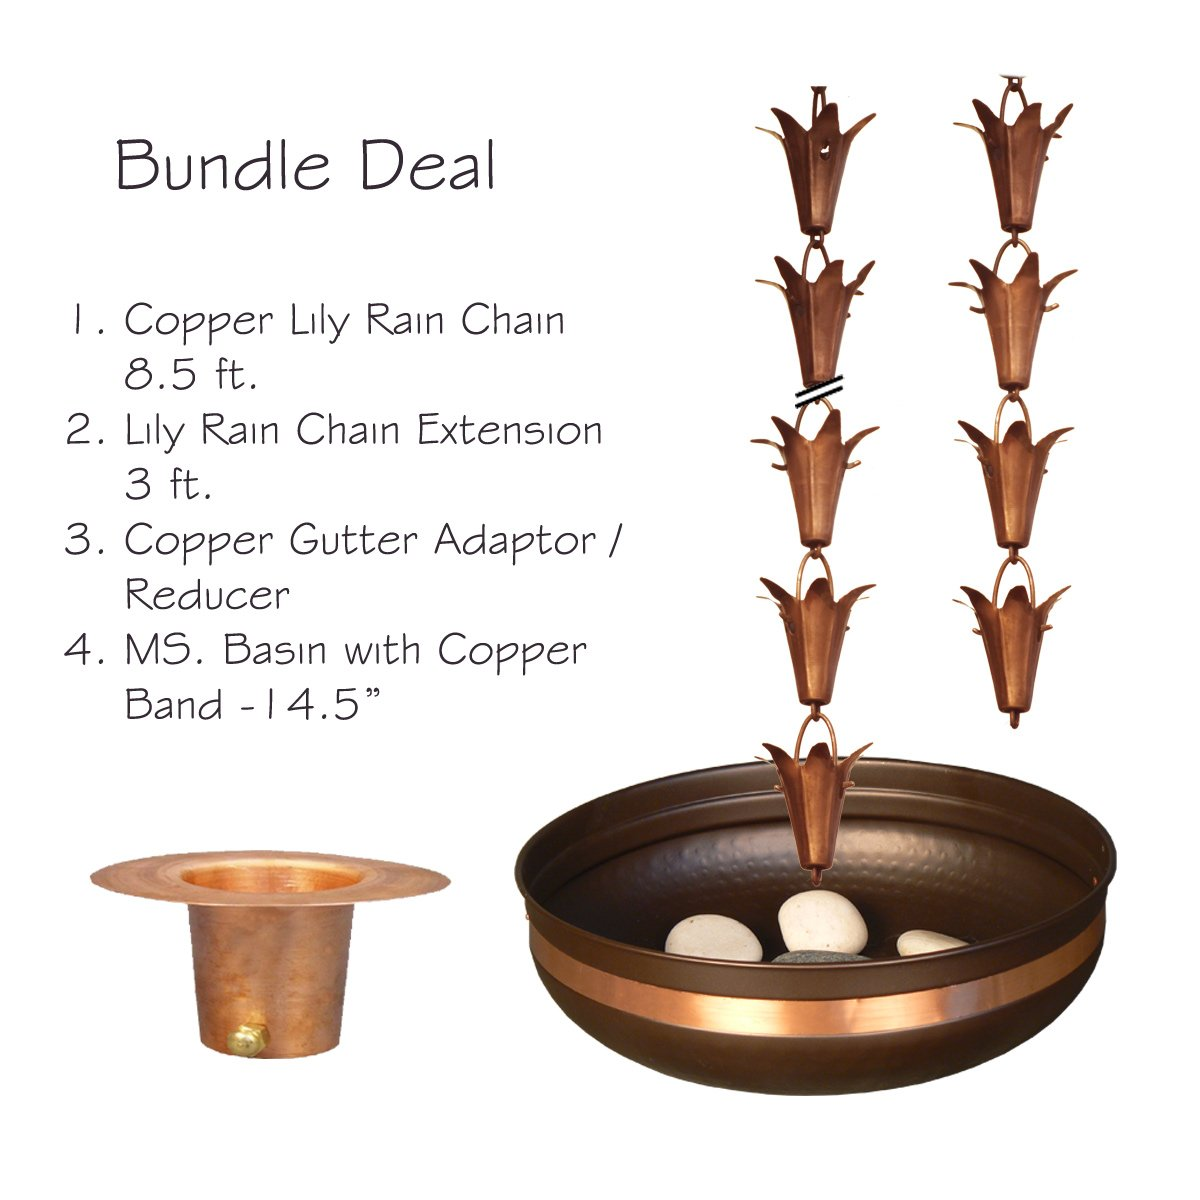 Monarch Pure Copper Lily Rain Chain Bundle Deal by Monarch Rain Chains